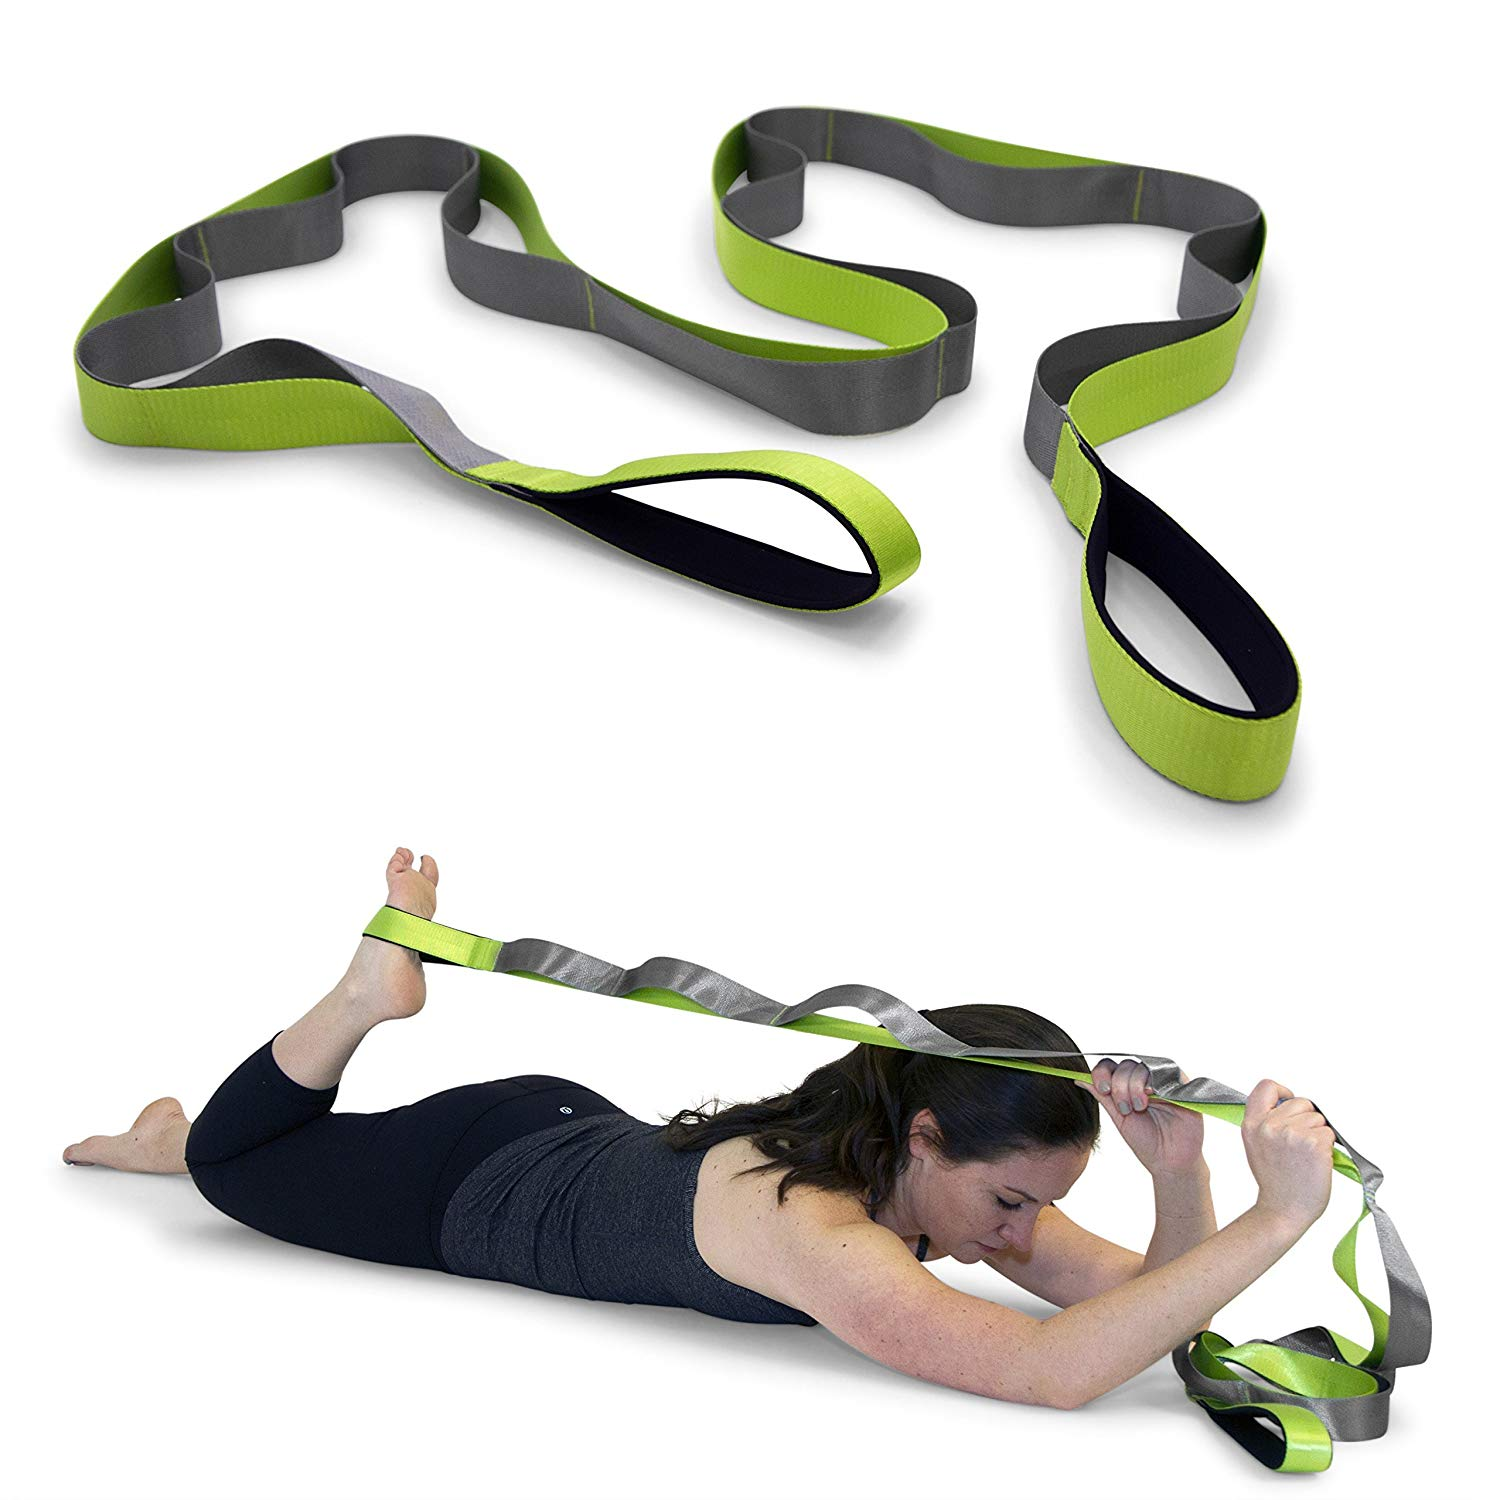 stretching routine best tools post-workout amazon Gradient Fitness Stretching Strap